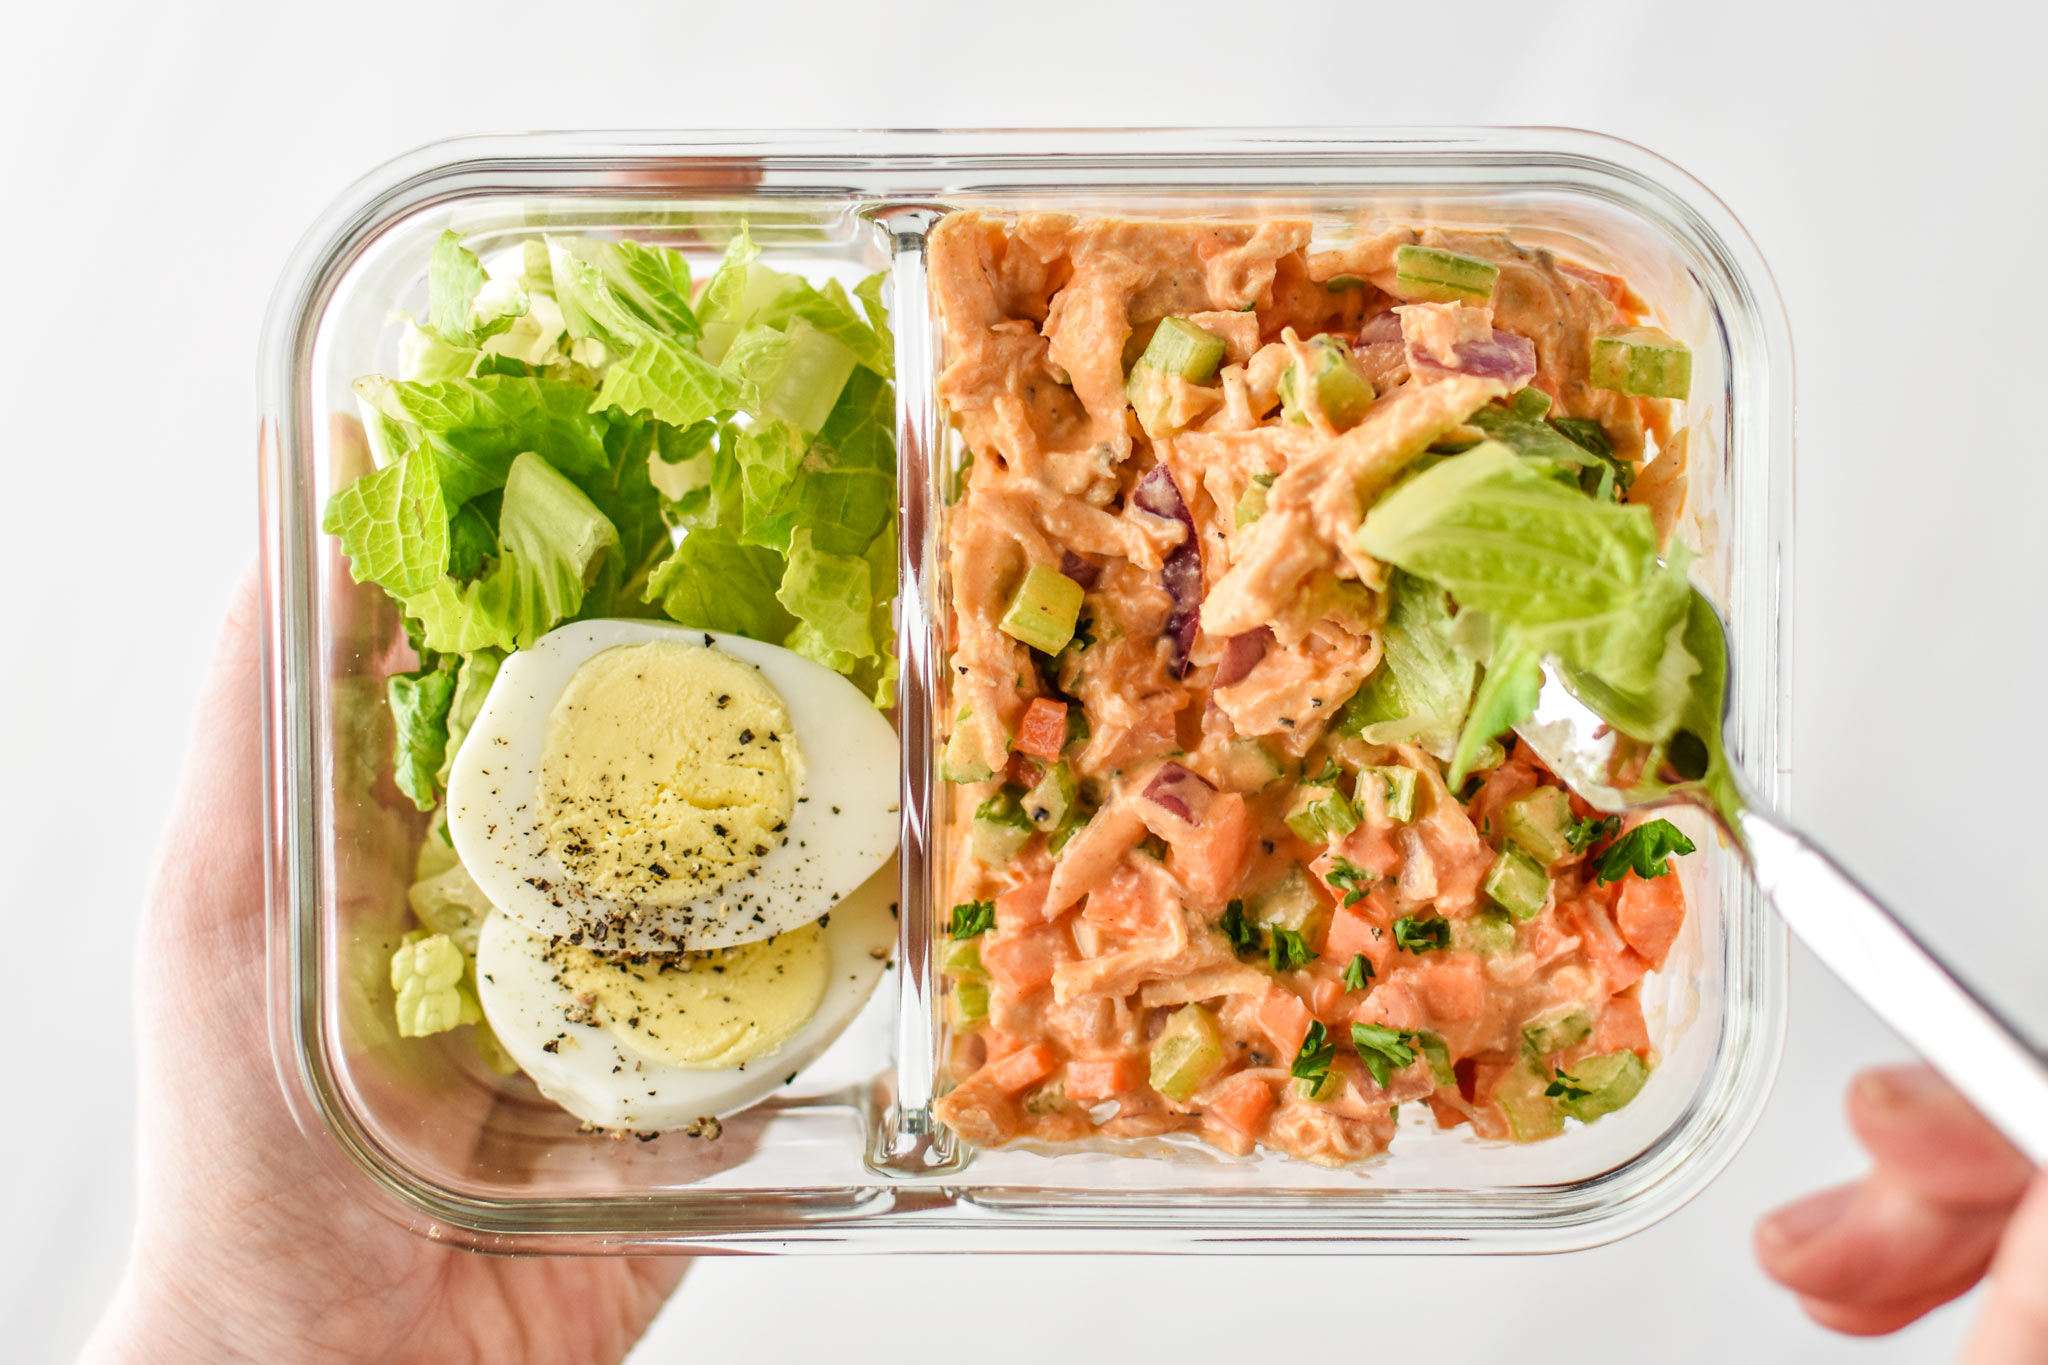 Meal prepped easy buffalo chicken salad